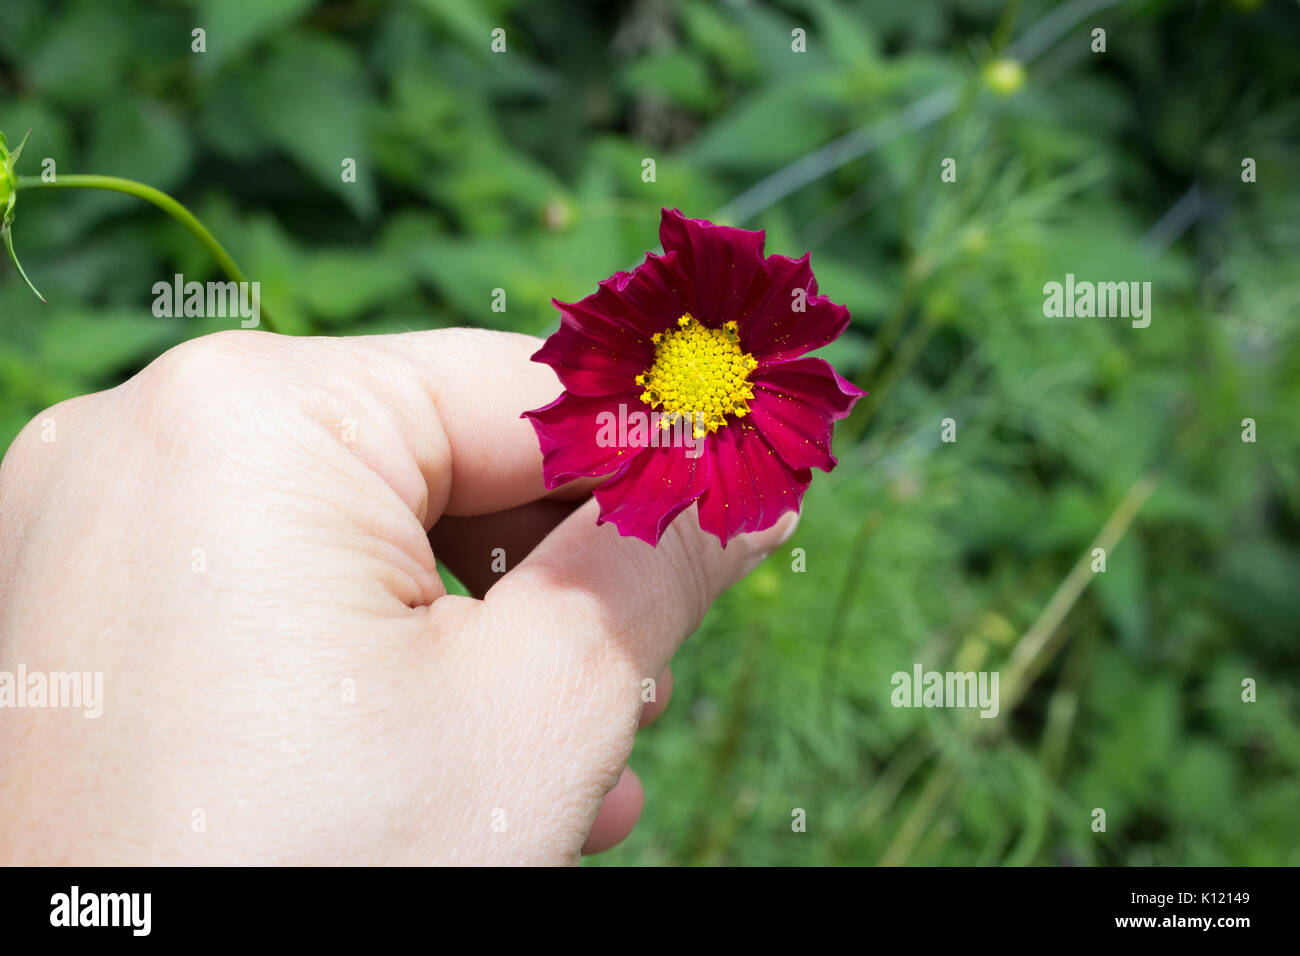 A Hand with bright red Cosmos flowers with eight petals and a yellow centre on a stem in full bloom in Summer in the garden with green leaves in the b - Stock Image